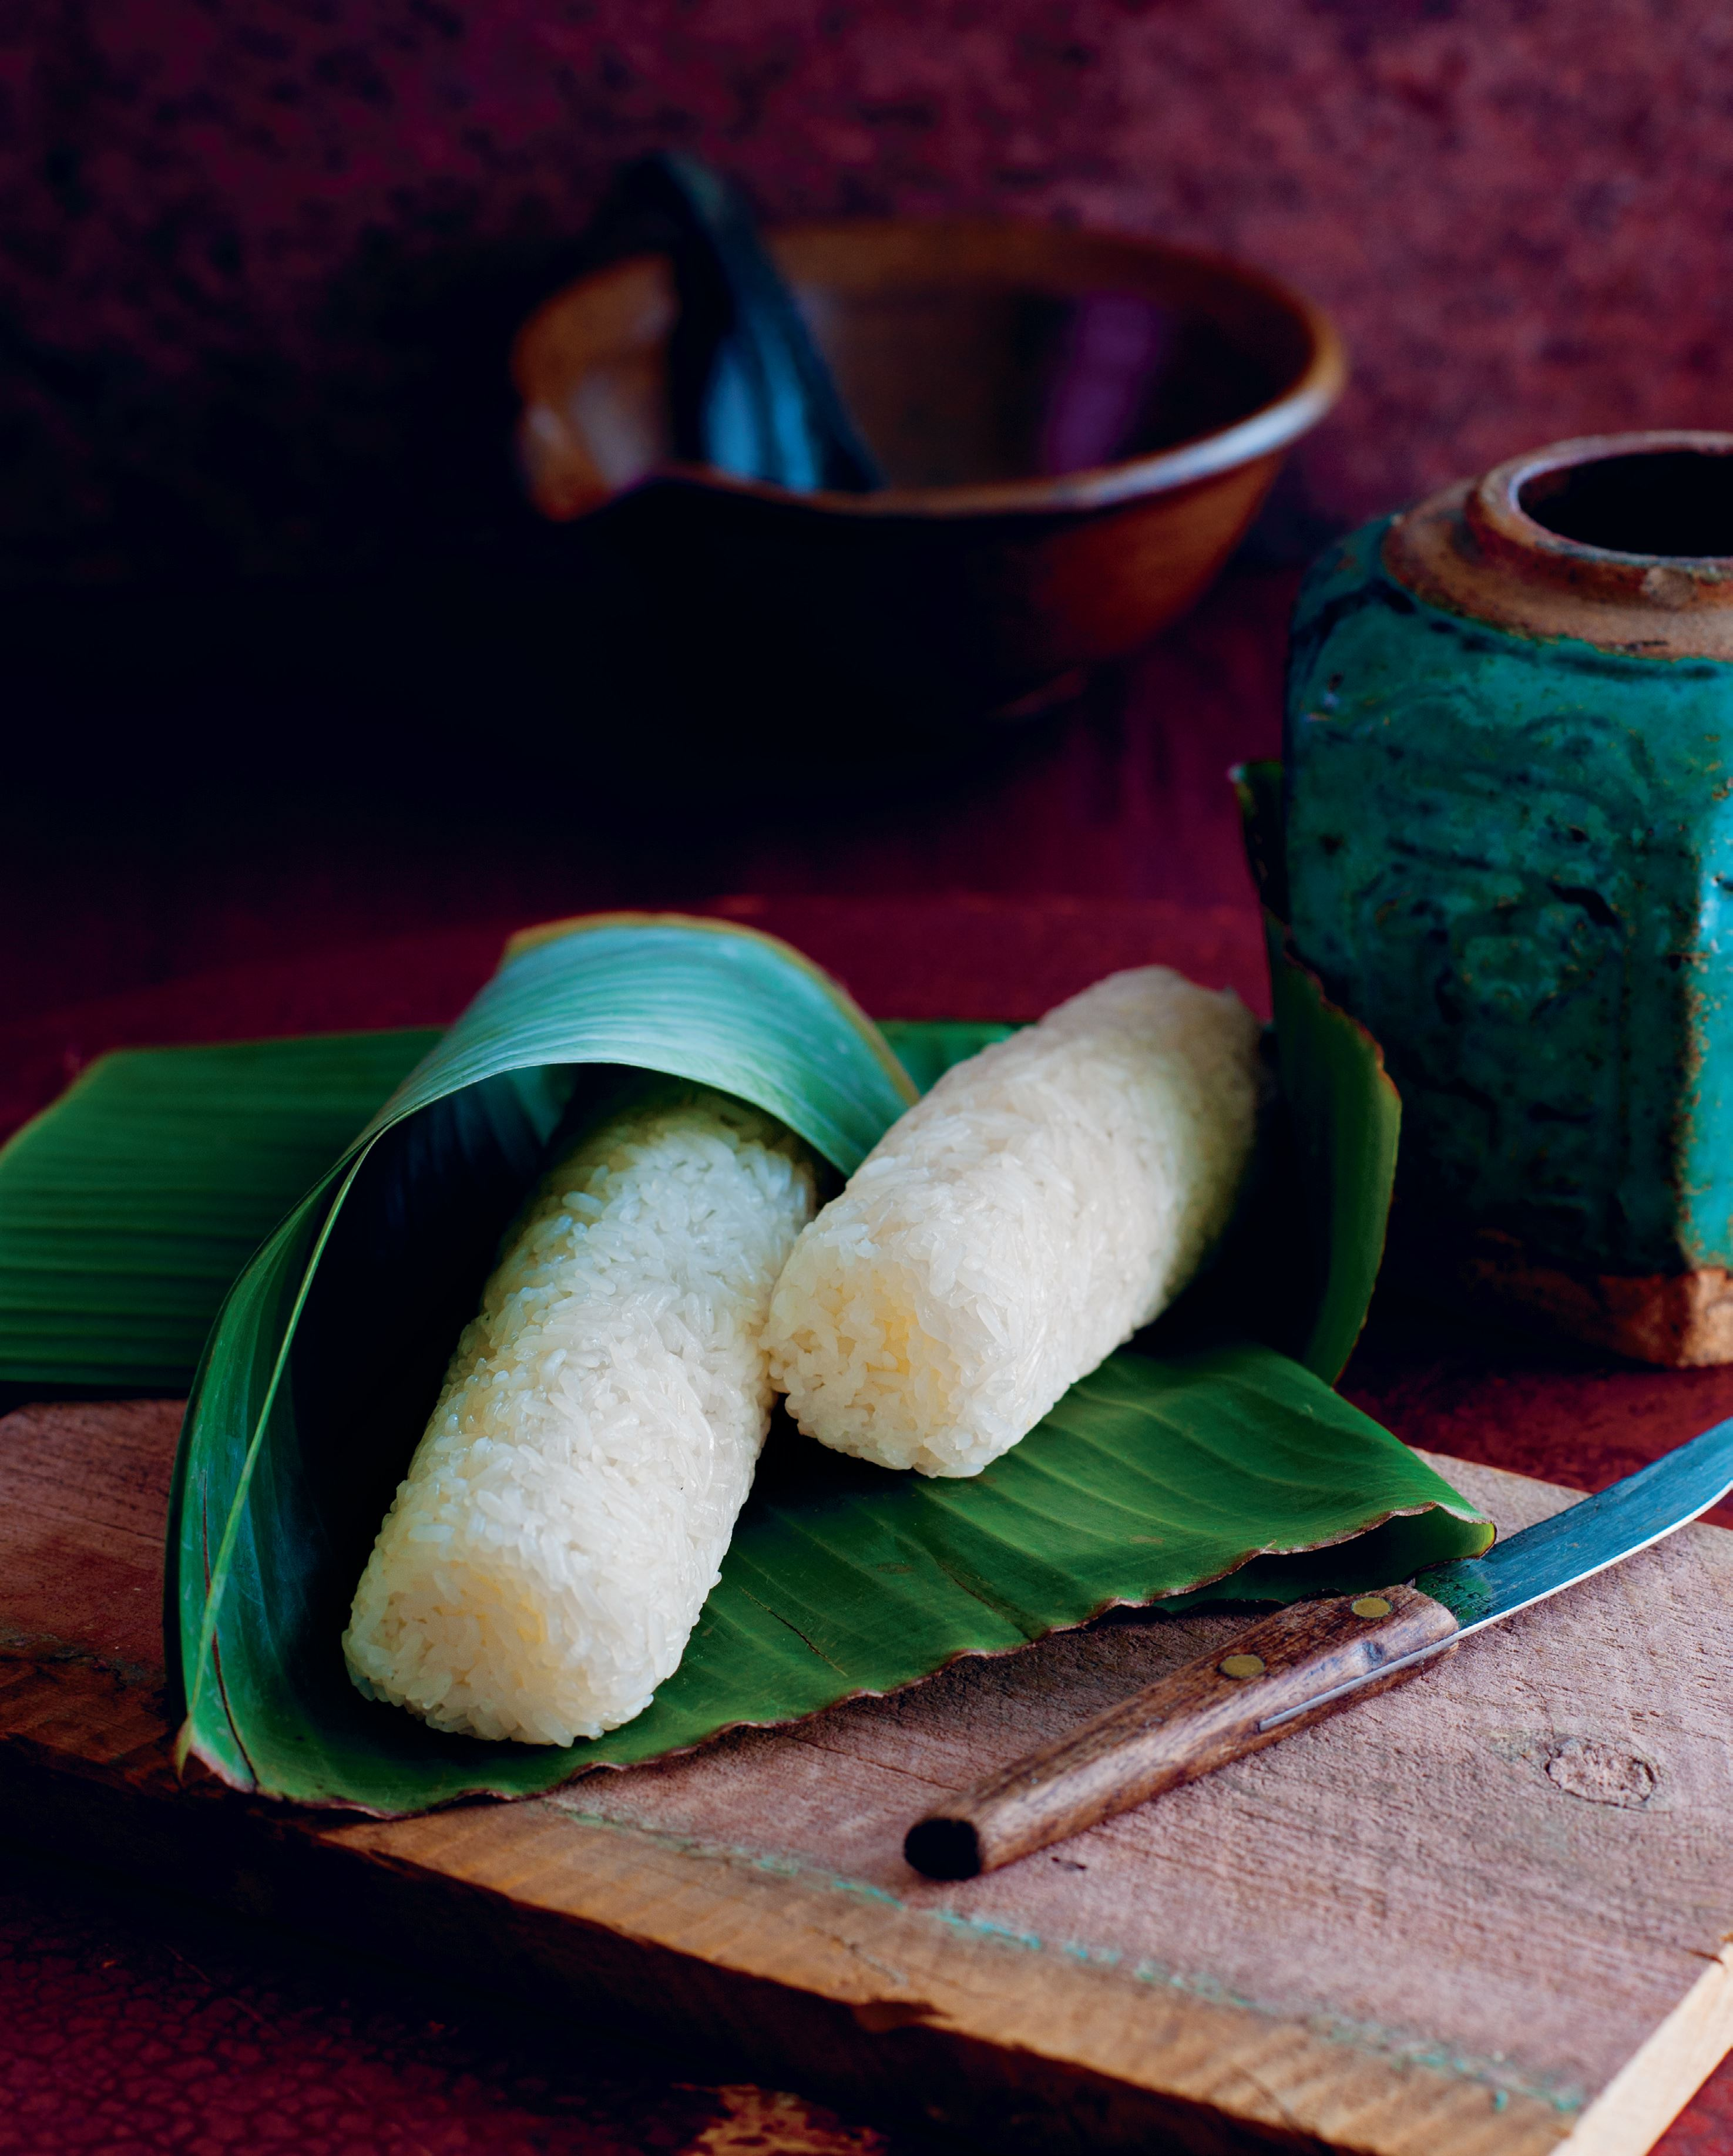 Sticky rice cooked in bamboo